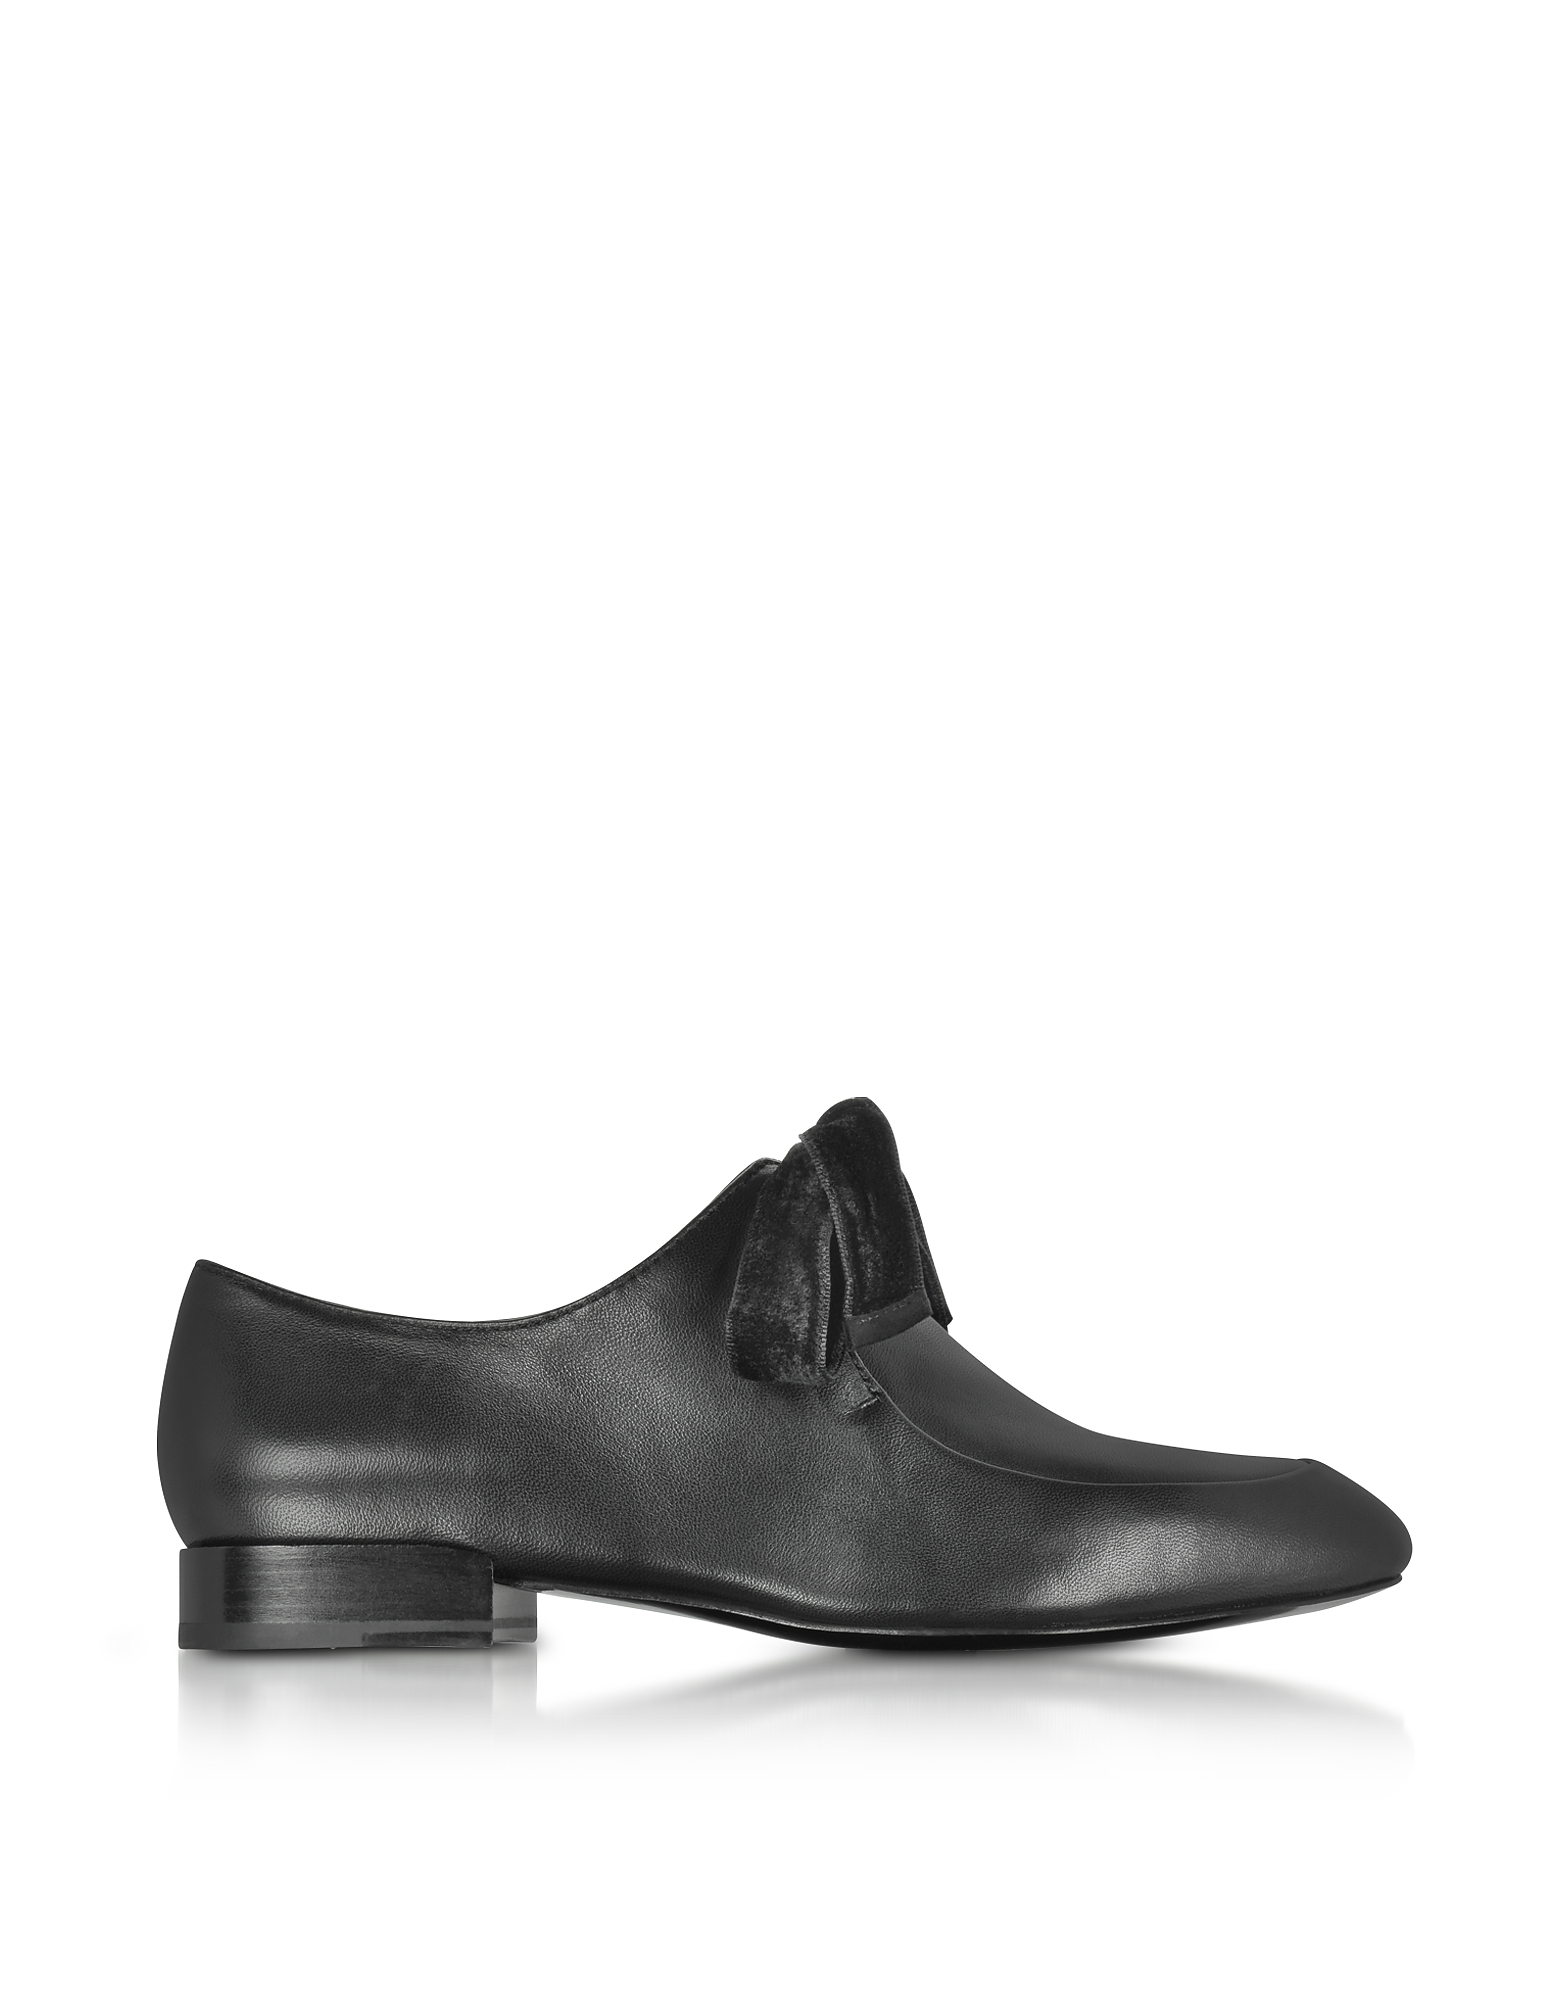 3.1 Phillip Lim Shoes, Black Leather Square Toe Lace Up Shoes